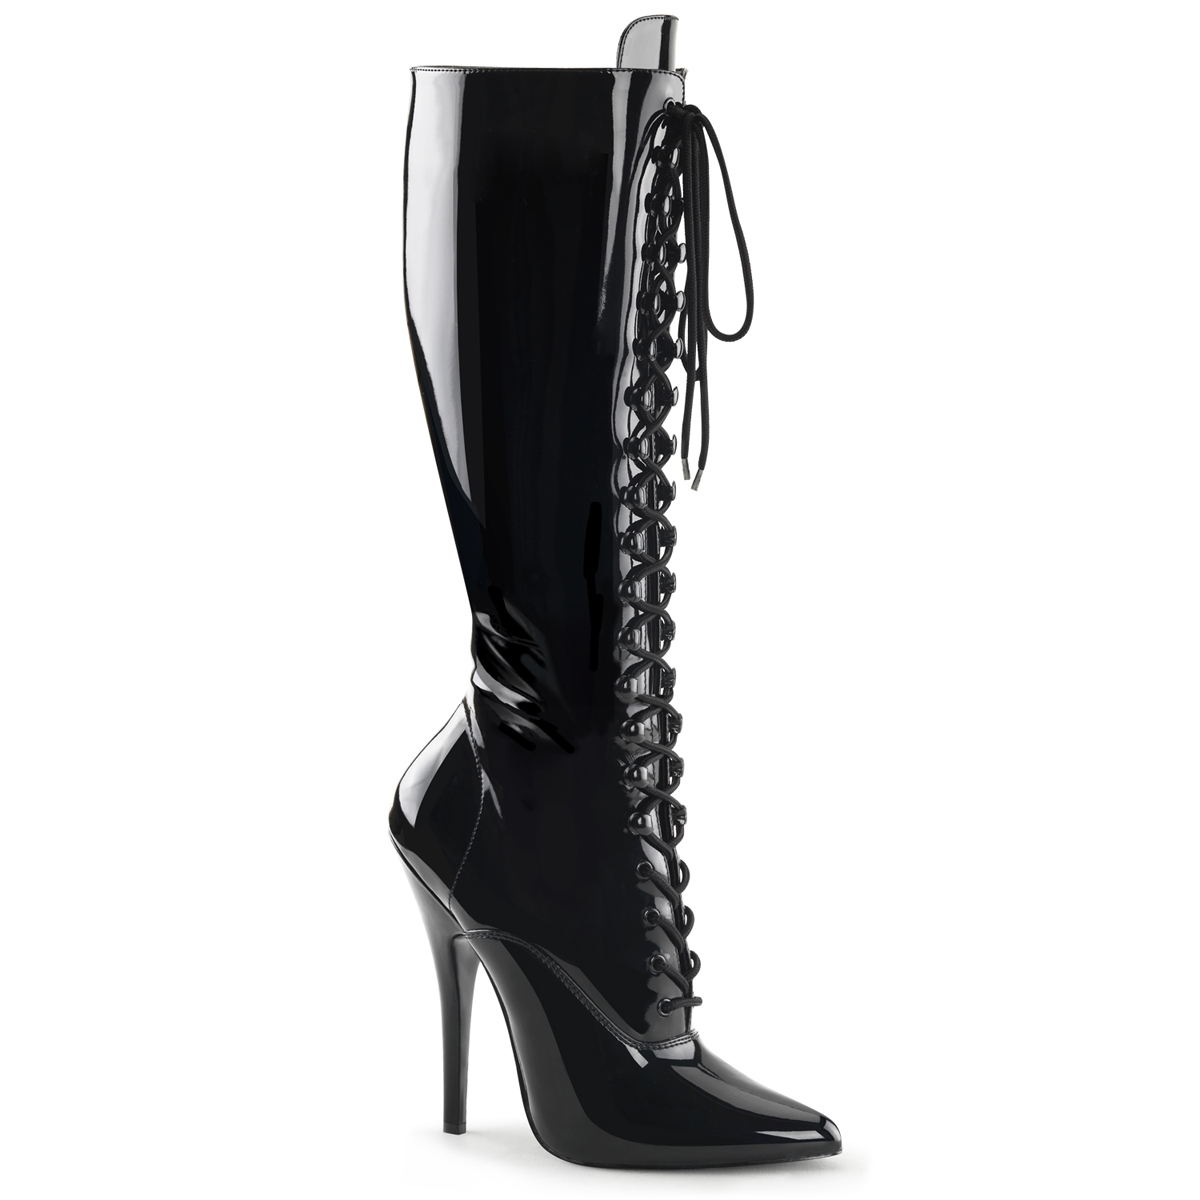 Extreme High Heels DOMINA 2020 Patent Black